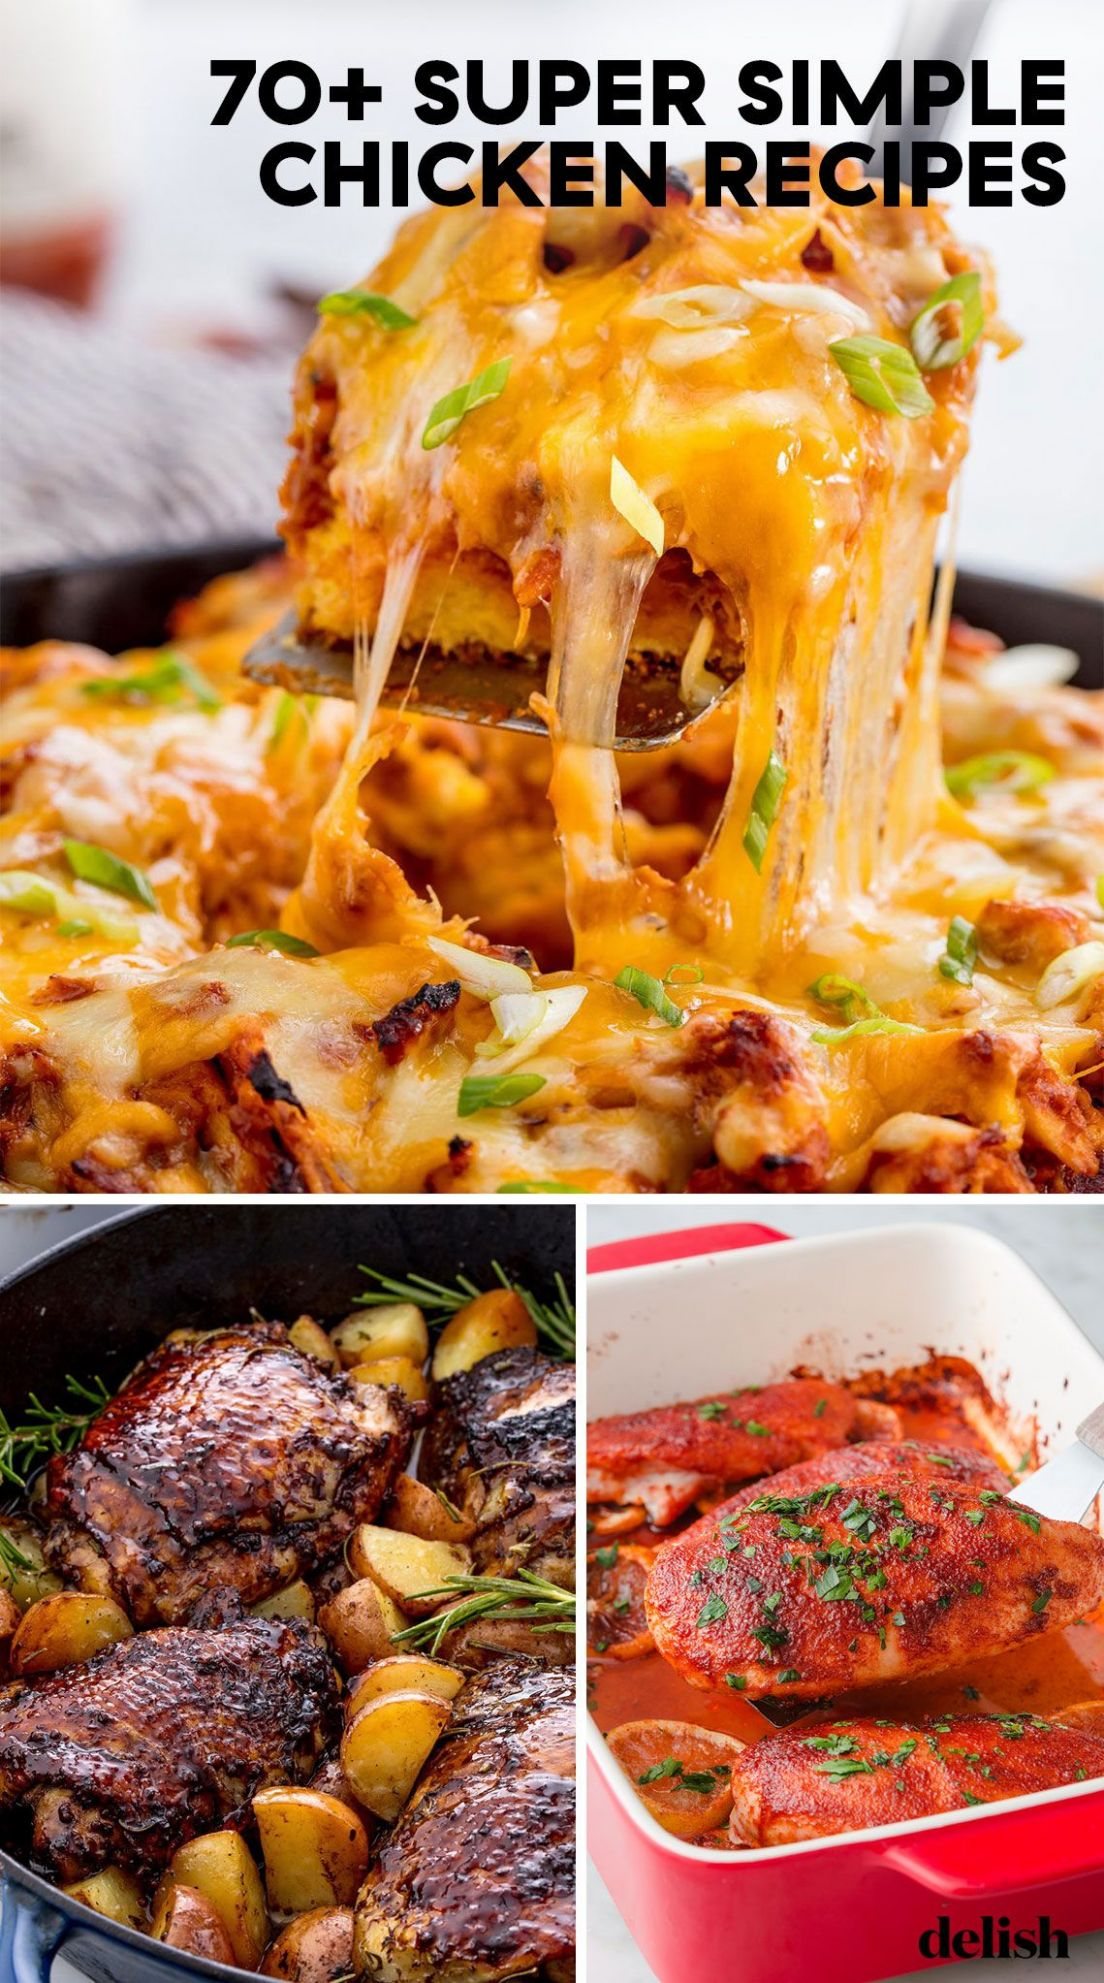 12+ Easy Chicken Dinner Recipes - Simple Ideas for Chicken Dishes - Simple Recipes Chicken